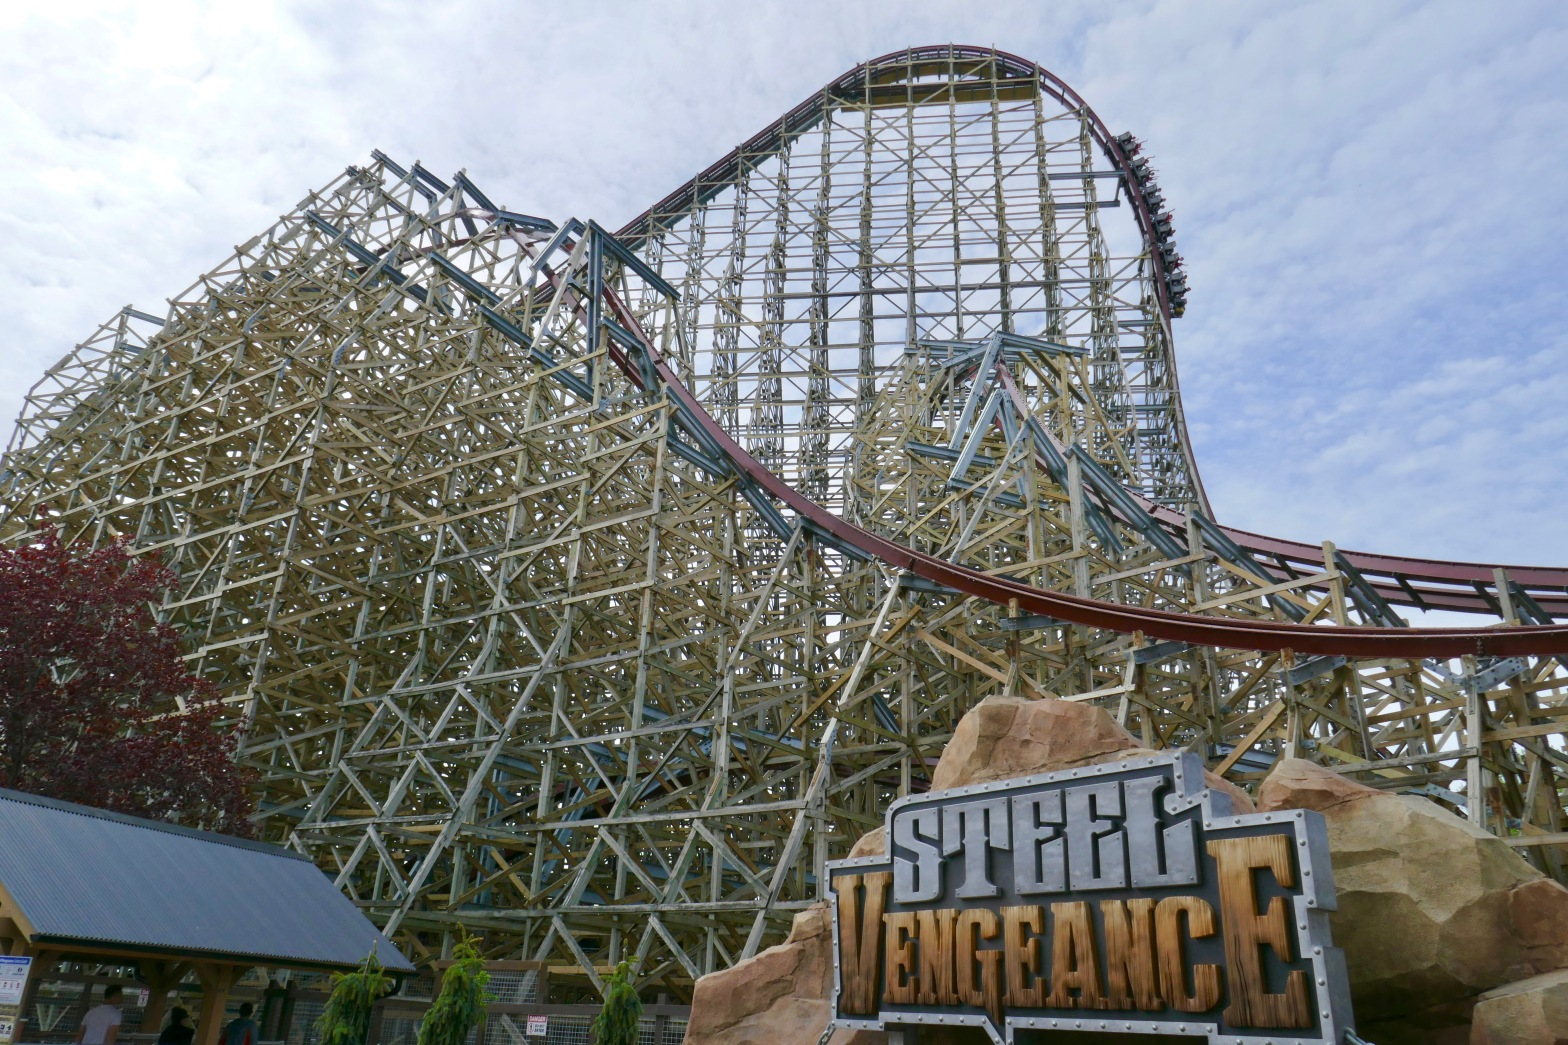 STEEL VENGEANCE REVIEW: The World's Greatest Roller Coaster ...